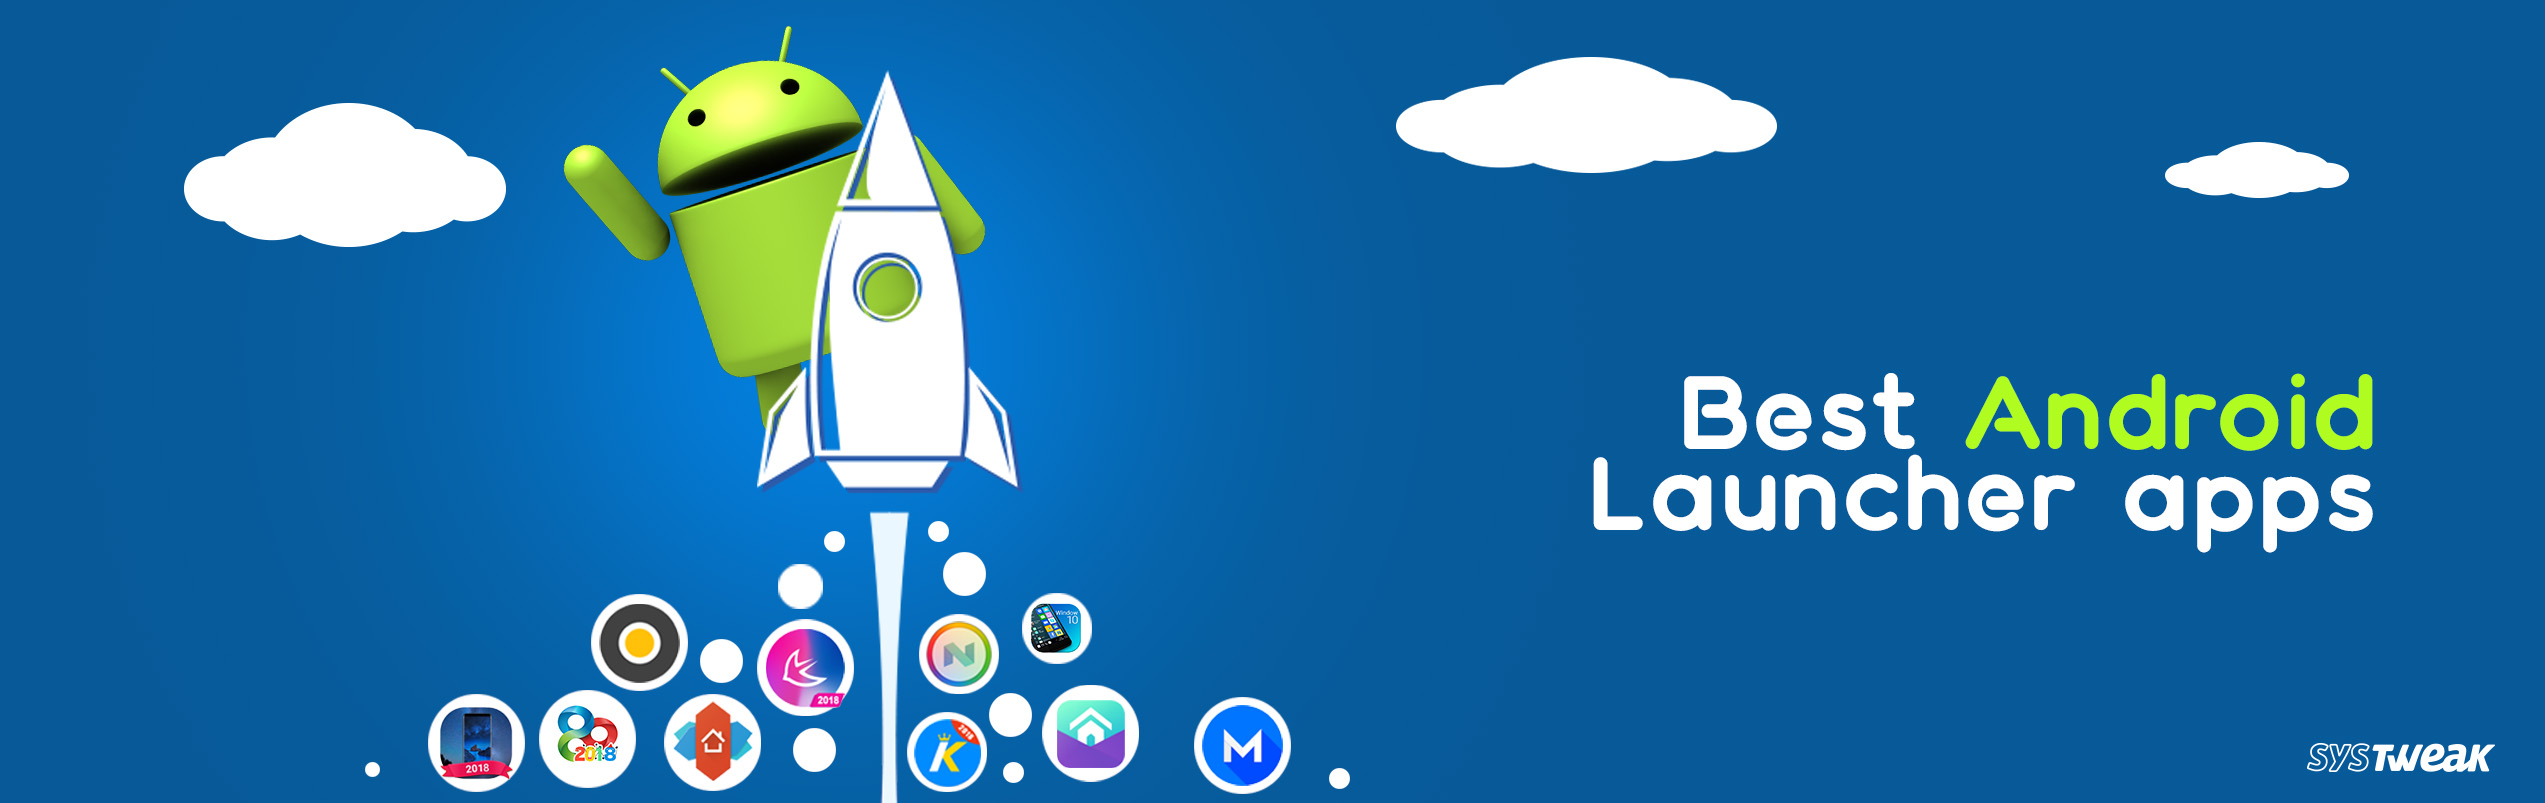 20 Best Android Launcher Apps in 2018 – Fastest Launcher for Android